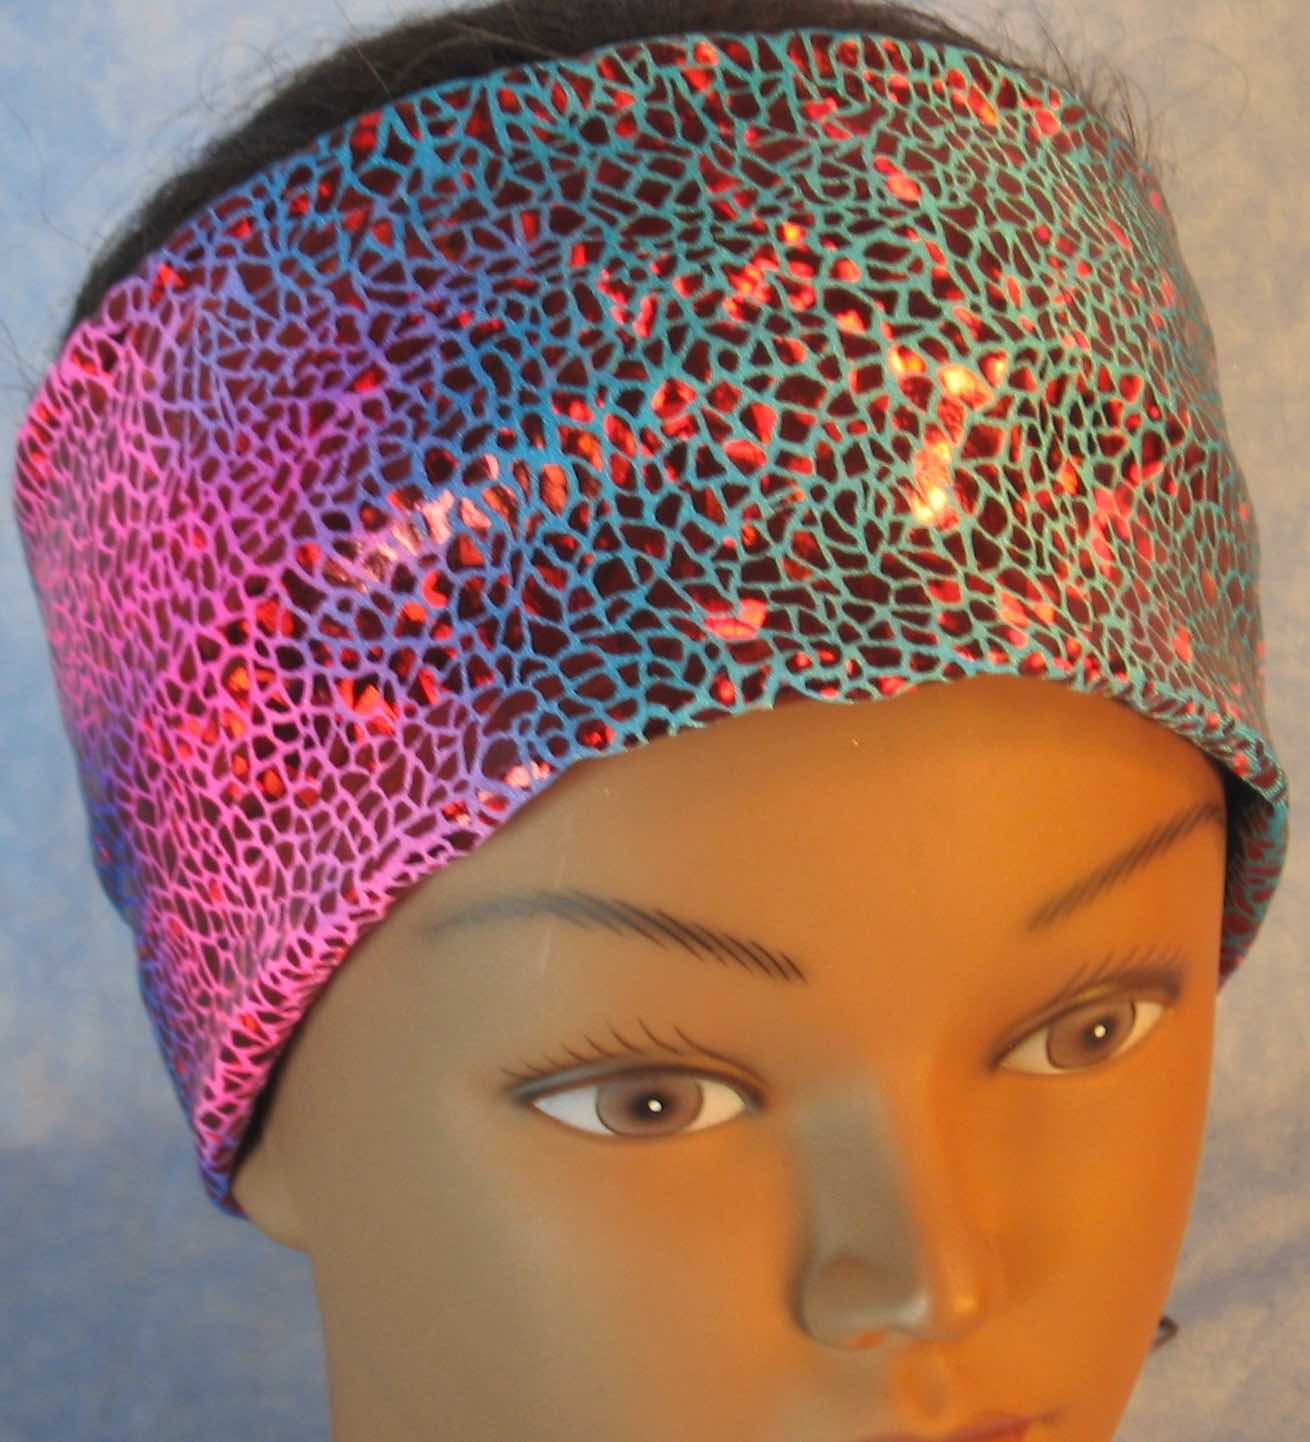 Headband-Red Sparkle on Turquoise Pink Tie Dye Performance Knit-Adult S